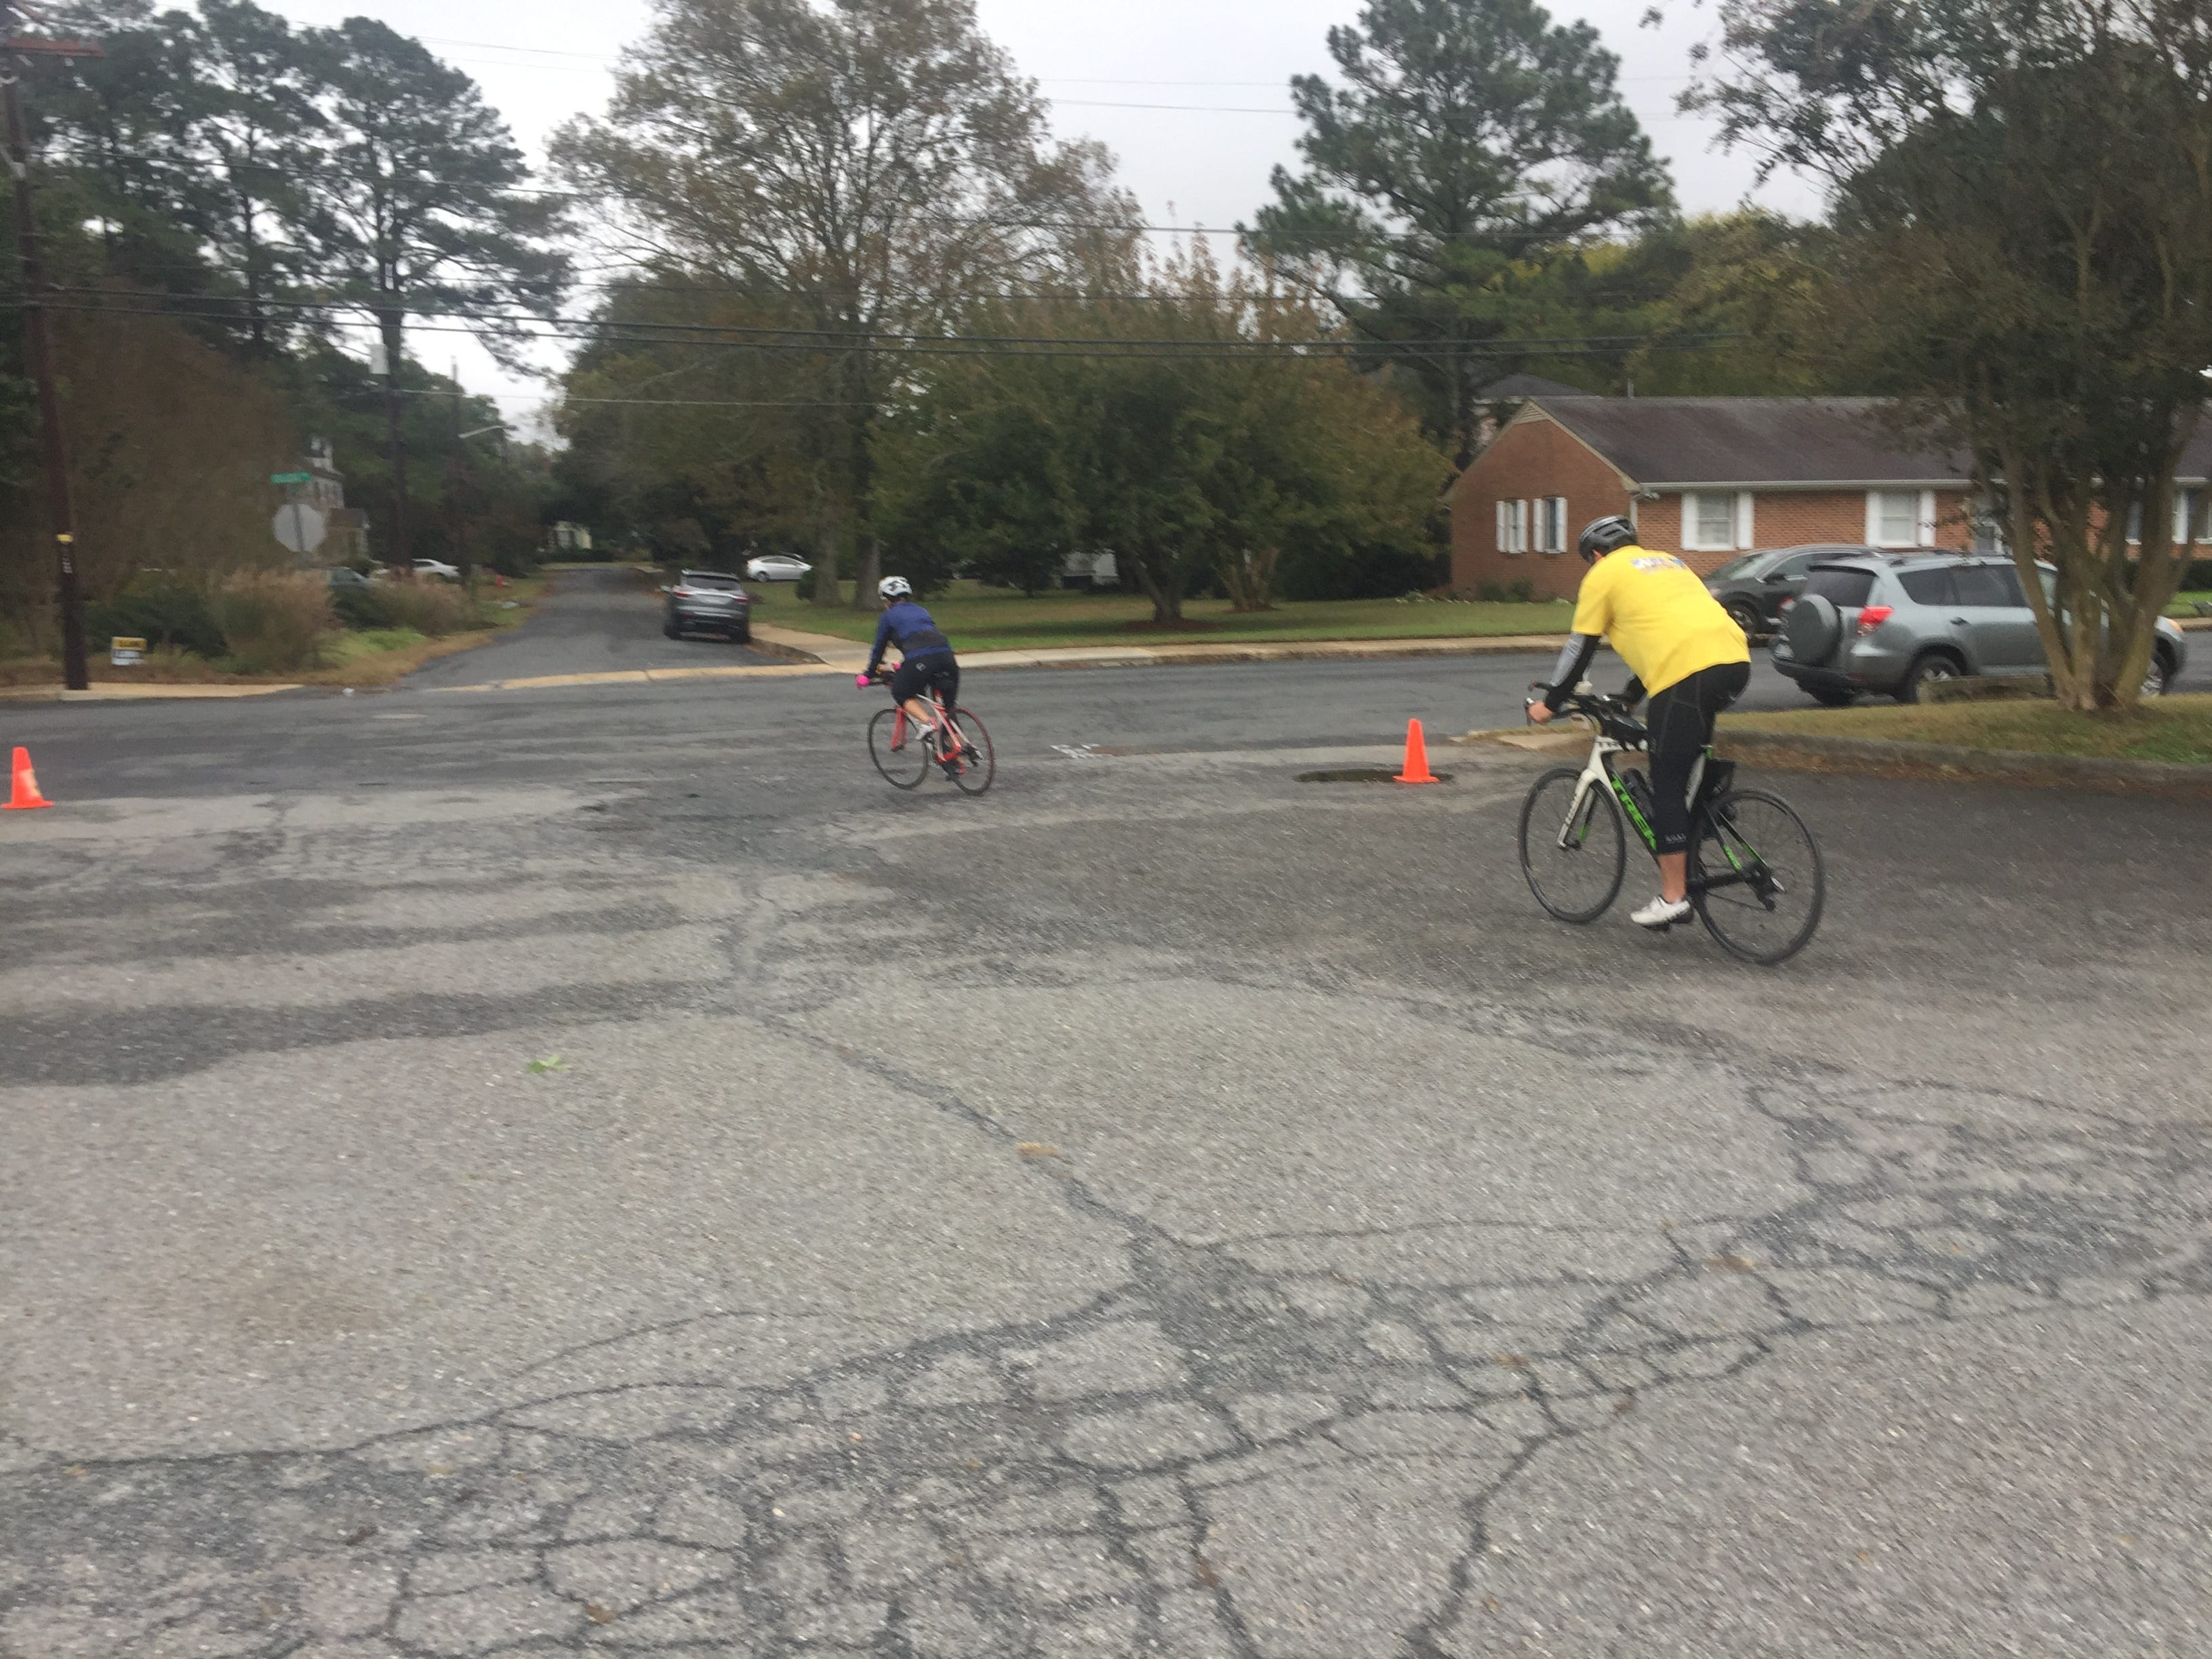 A pair of bicyclists head out of the parking lot at the Historic Onancock School during the Bike & Brew event on Saturday, Oct. 27, 2018. The event, held following the CBES Bike Ride, highlighted the Eastern Shore of Virginia's two breweries, Black Narrows Brewing Co. and Cape Charles Brewing Co.